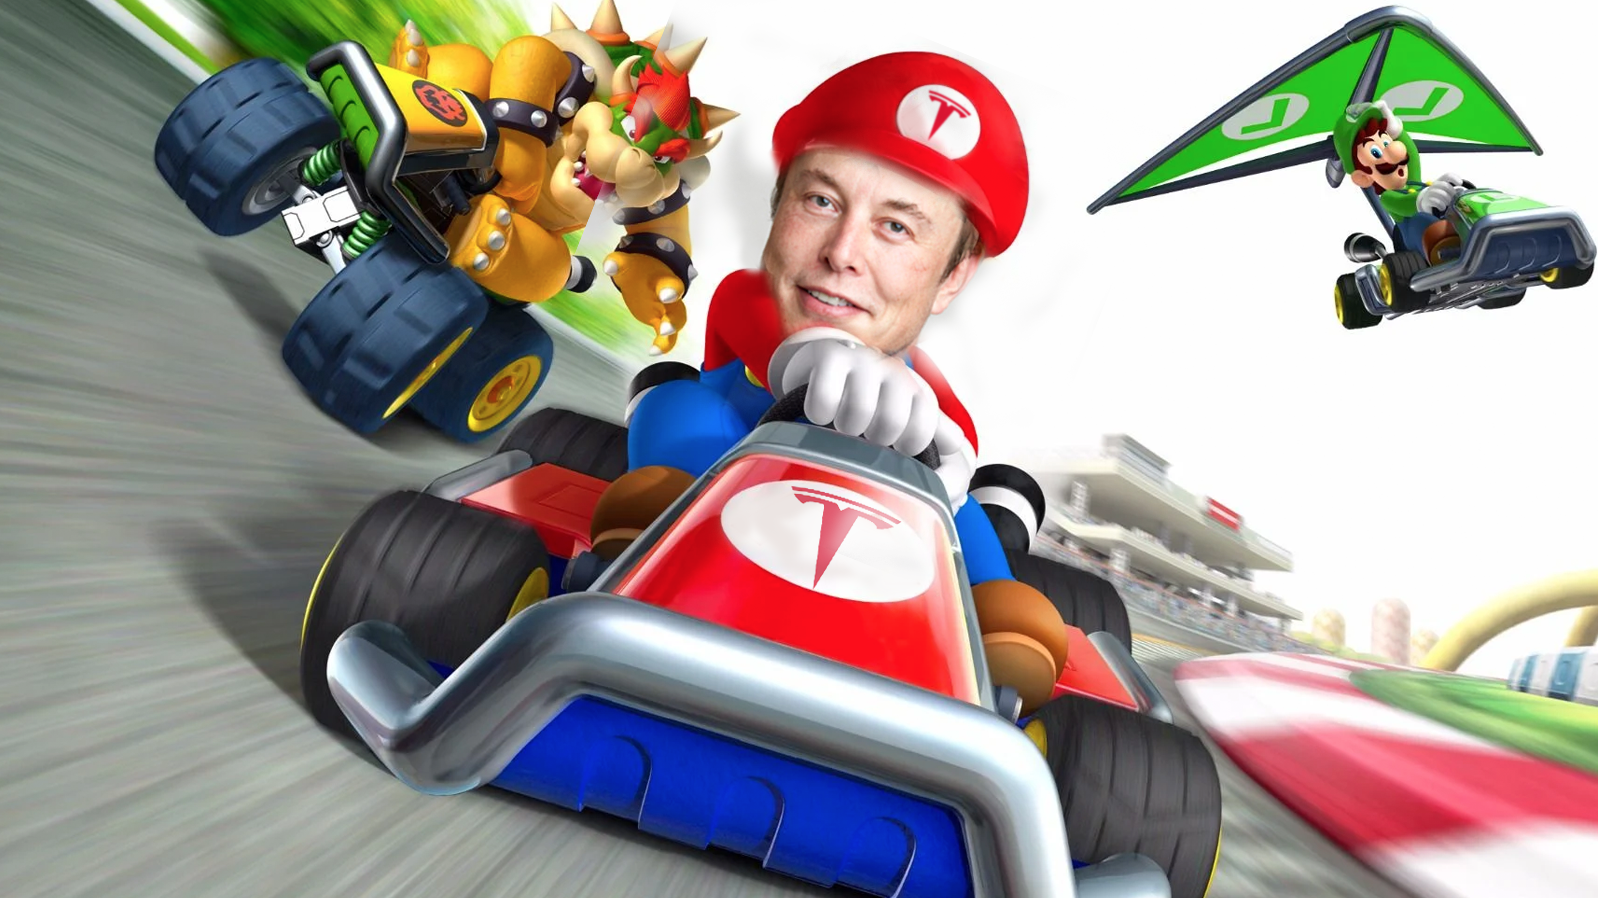 Elon Had Some Pretty Crappy Ideas About Video Games And Cars Over The Weekend